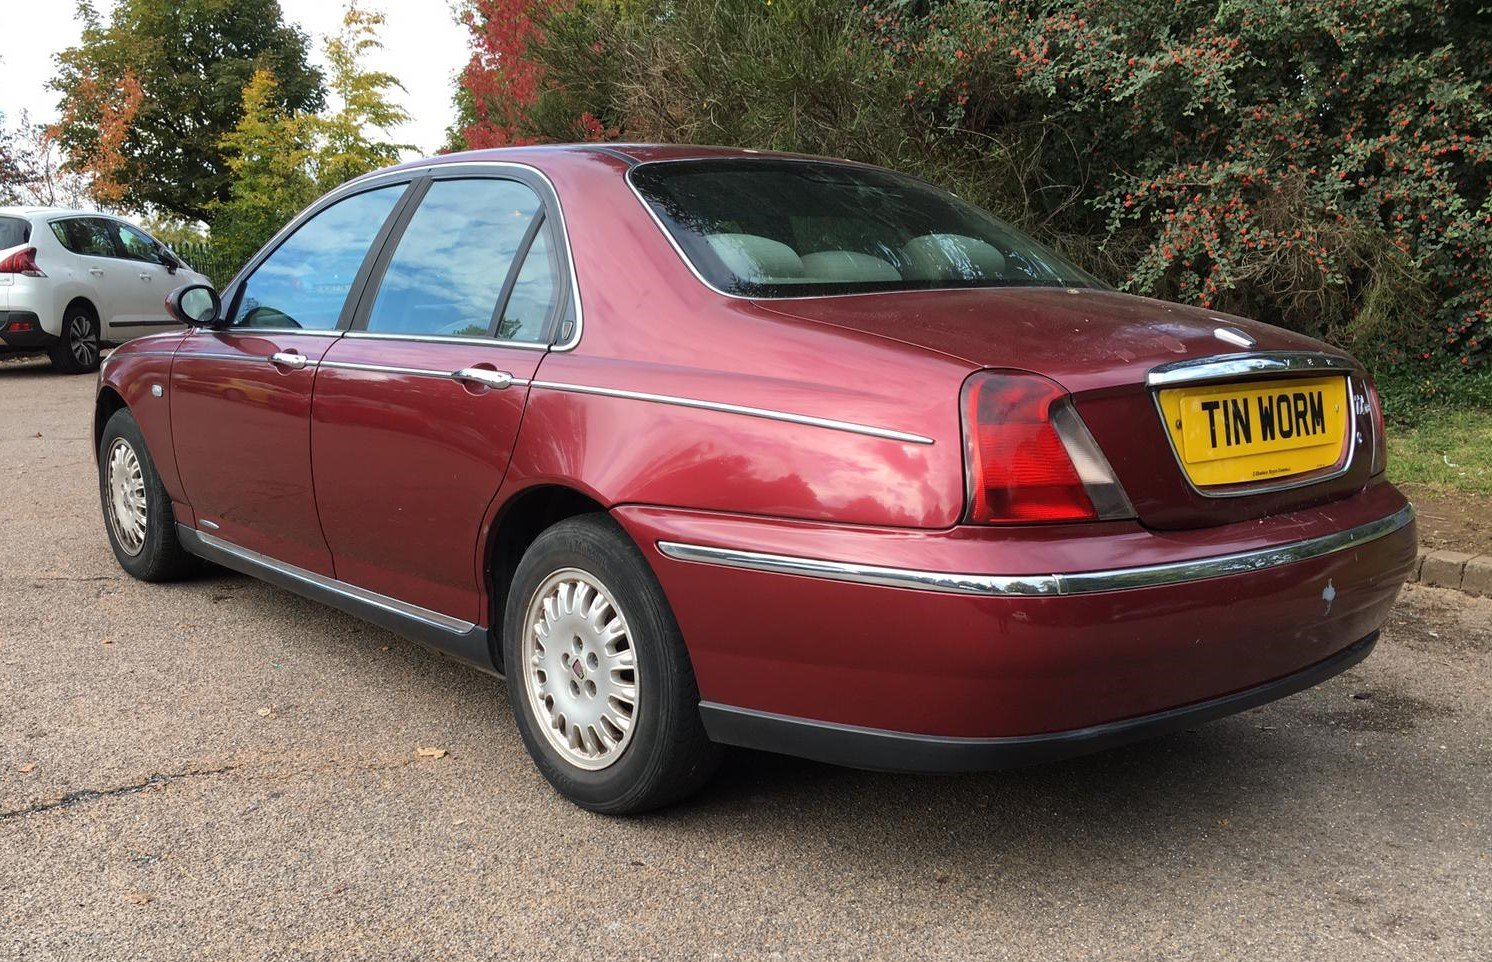 1999 Rover 75 Diesel Club Saloon Manual Gearbox For Sale (picture 3 of 6)